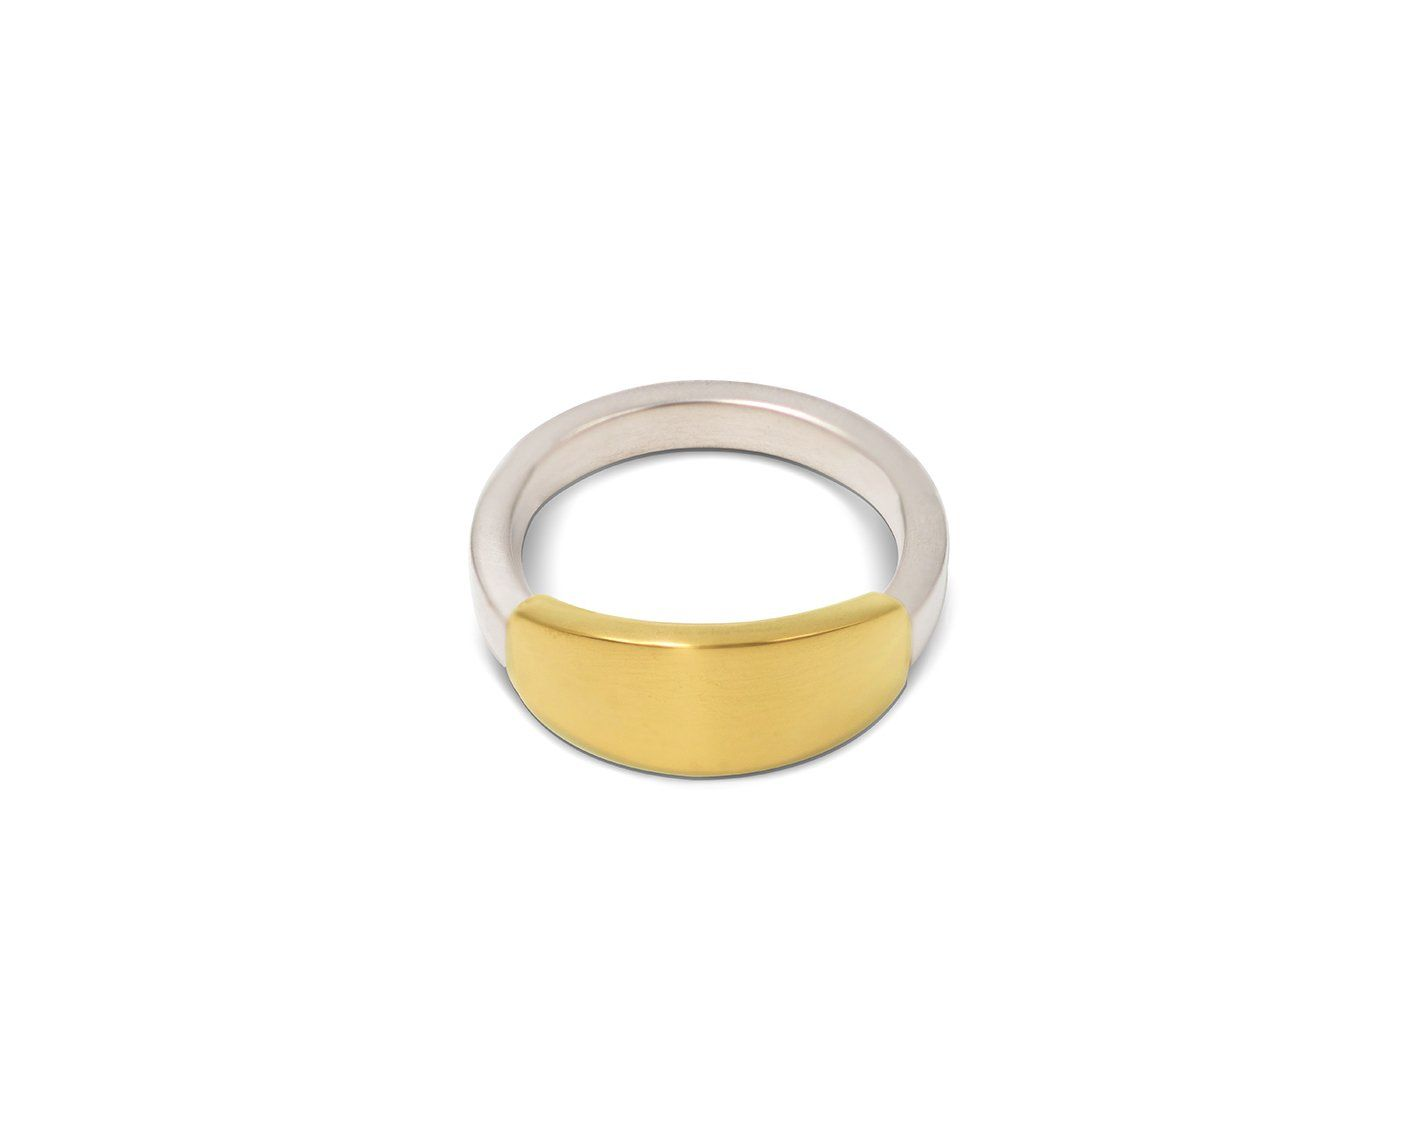 Scala Ring Gold in Rings Pinterest Rings Gold rings and Gold